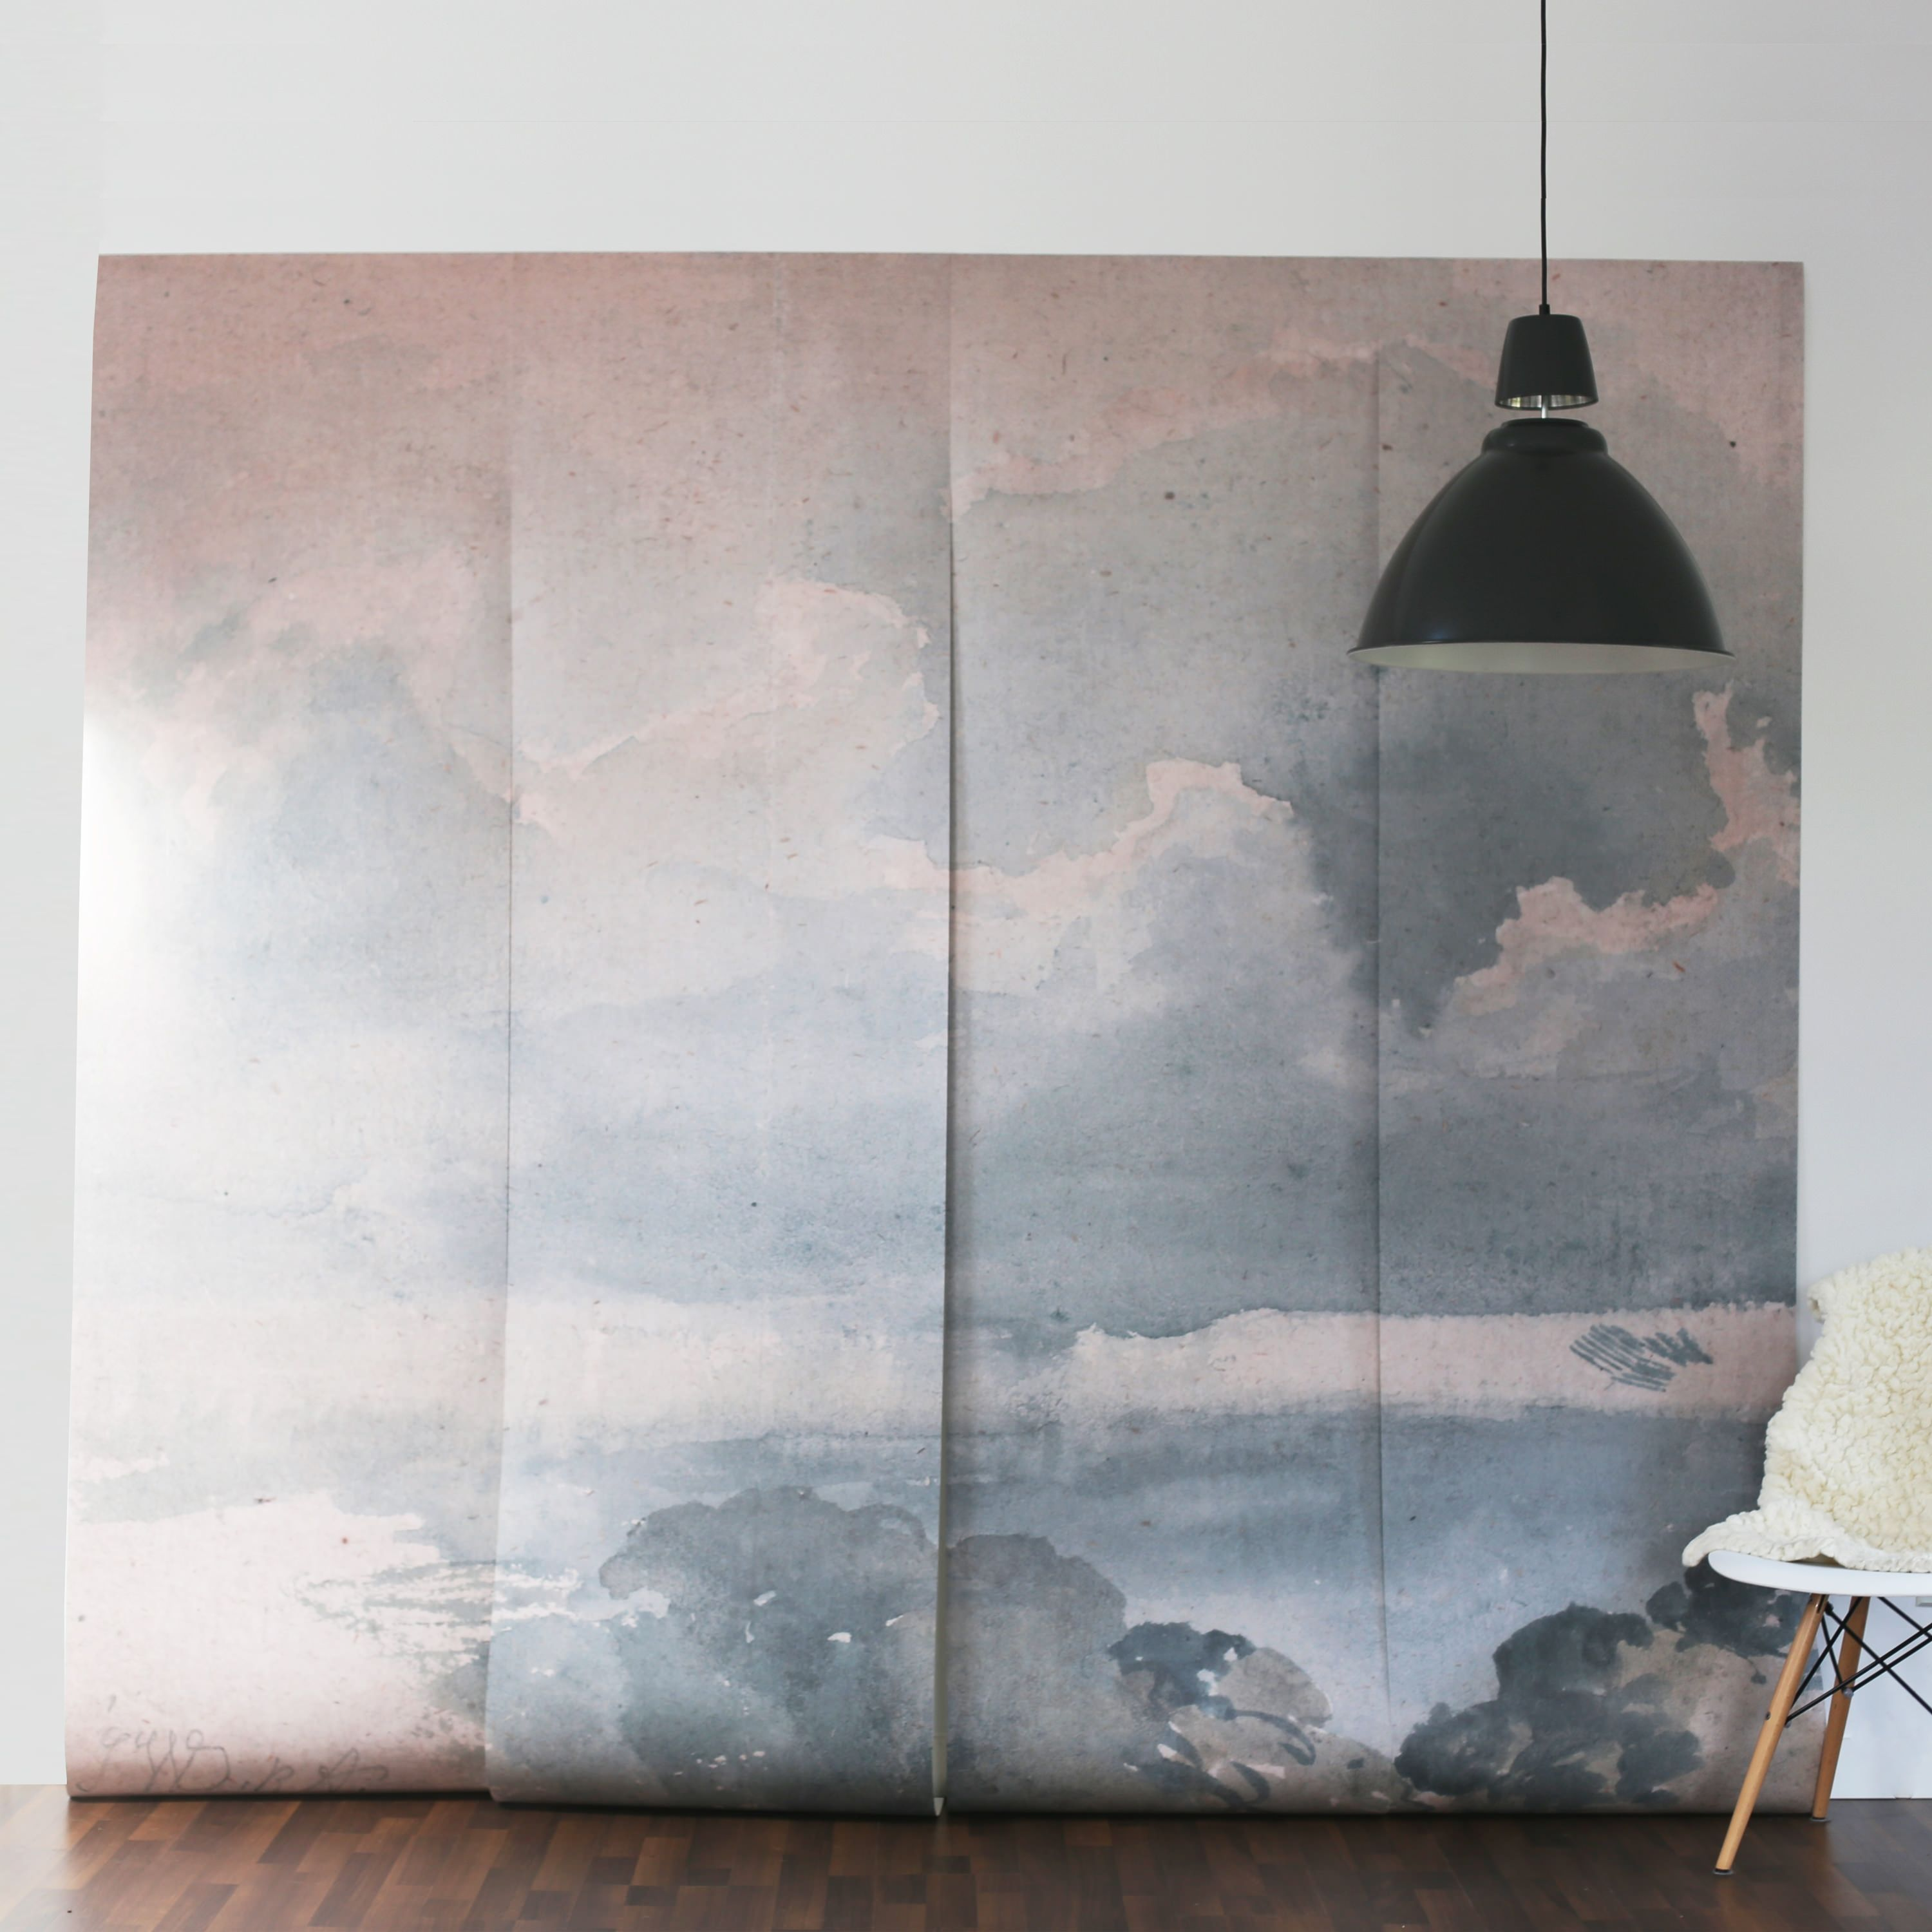 Anewall Features Vintage Clouded Sky Wall Murals This Self Adhesive Cloud Wallpaper Allows For Paste Free Application And Easy Removal